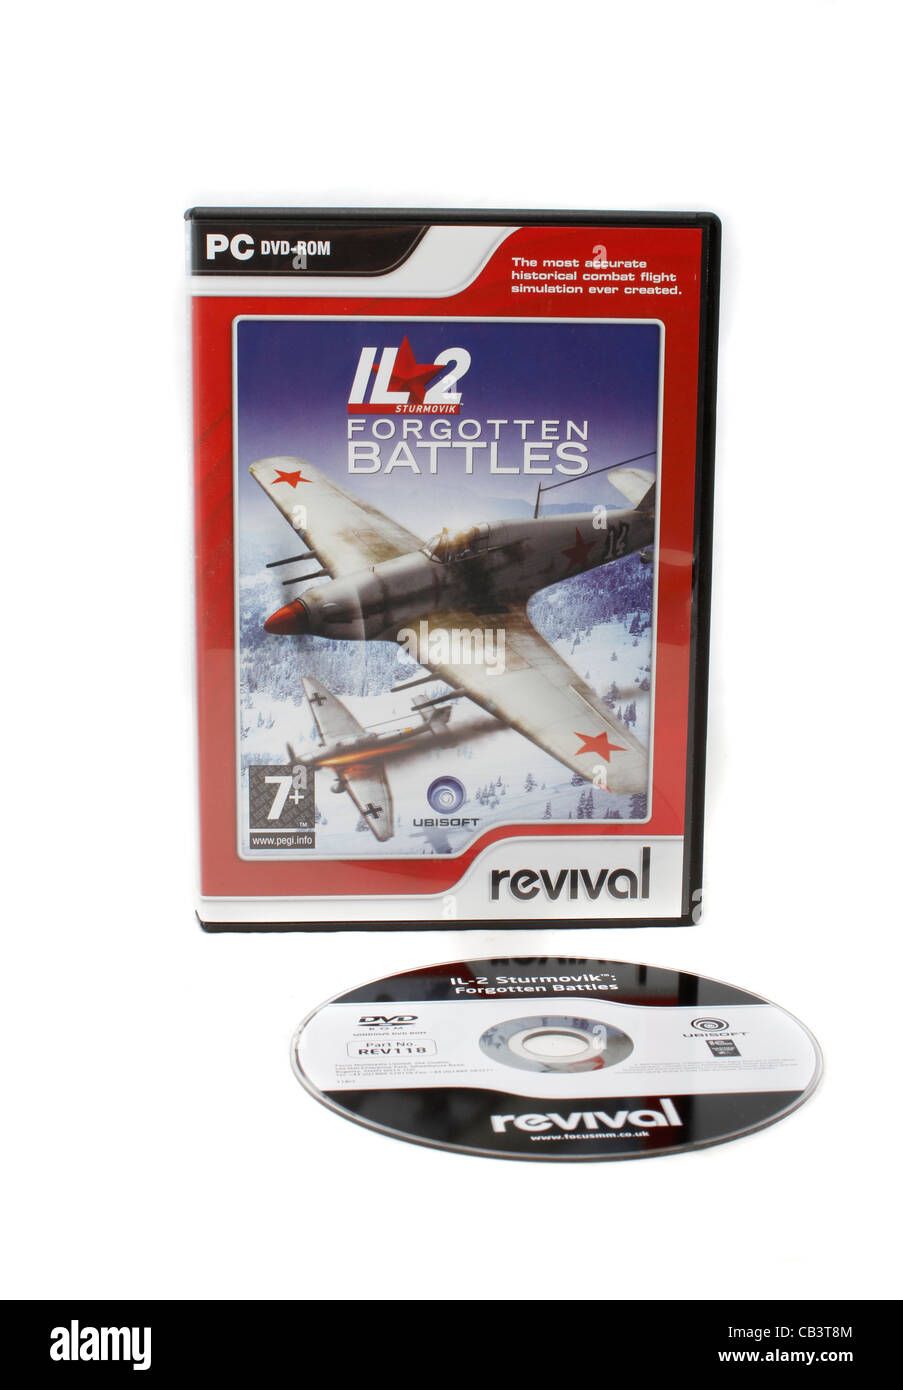 IL2 Forgotten battles computer game by Revival Stock Photo